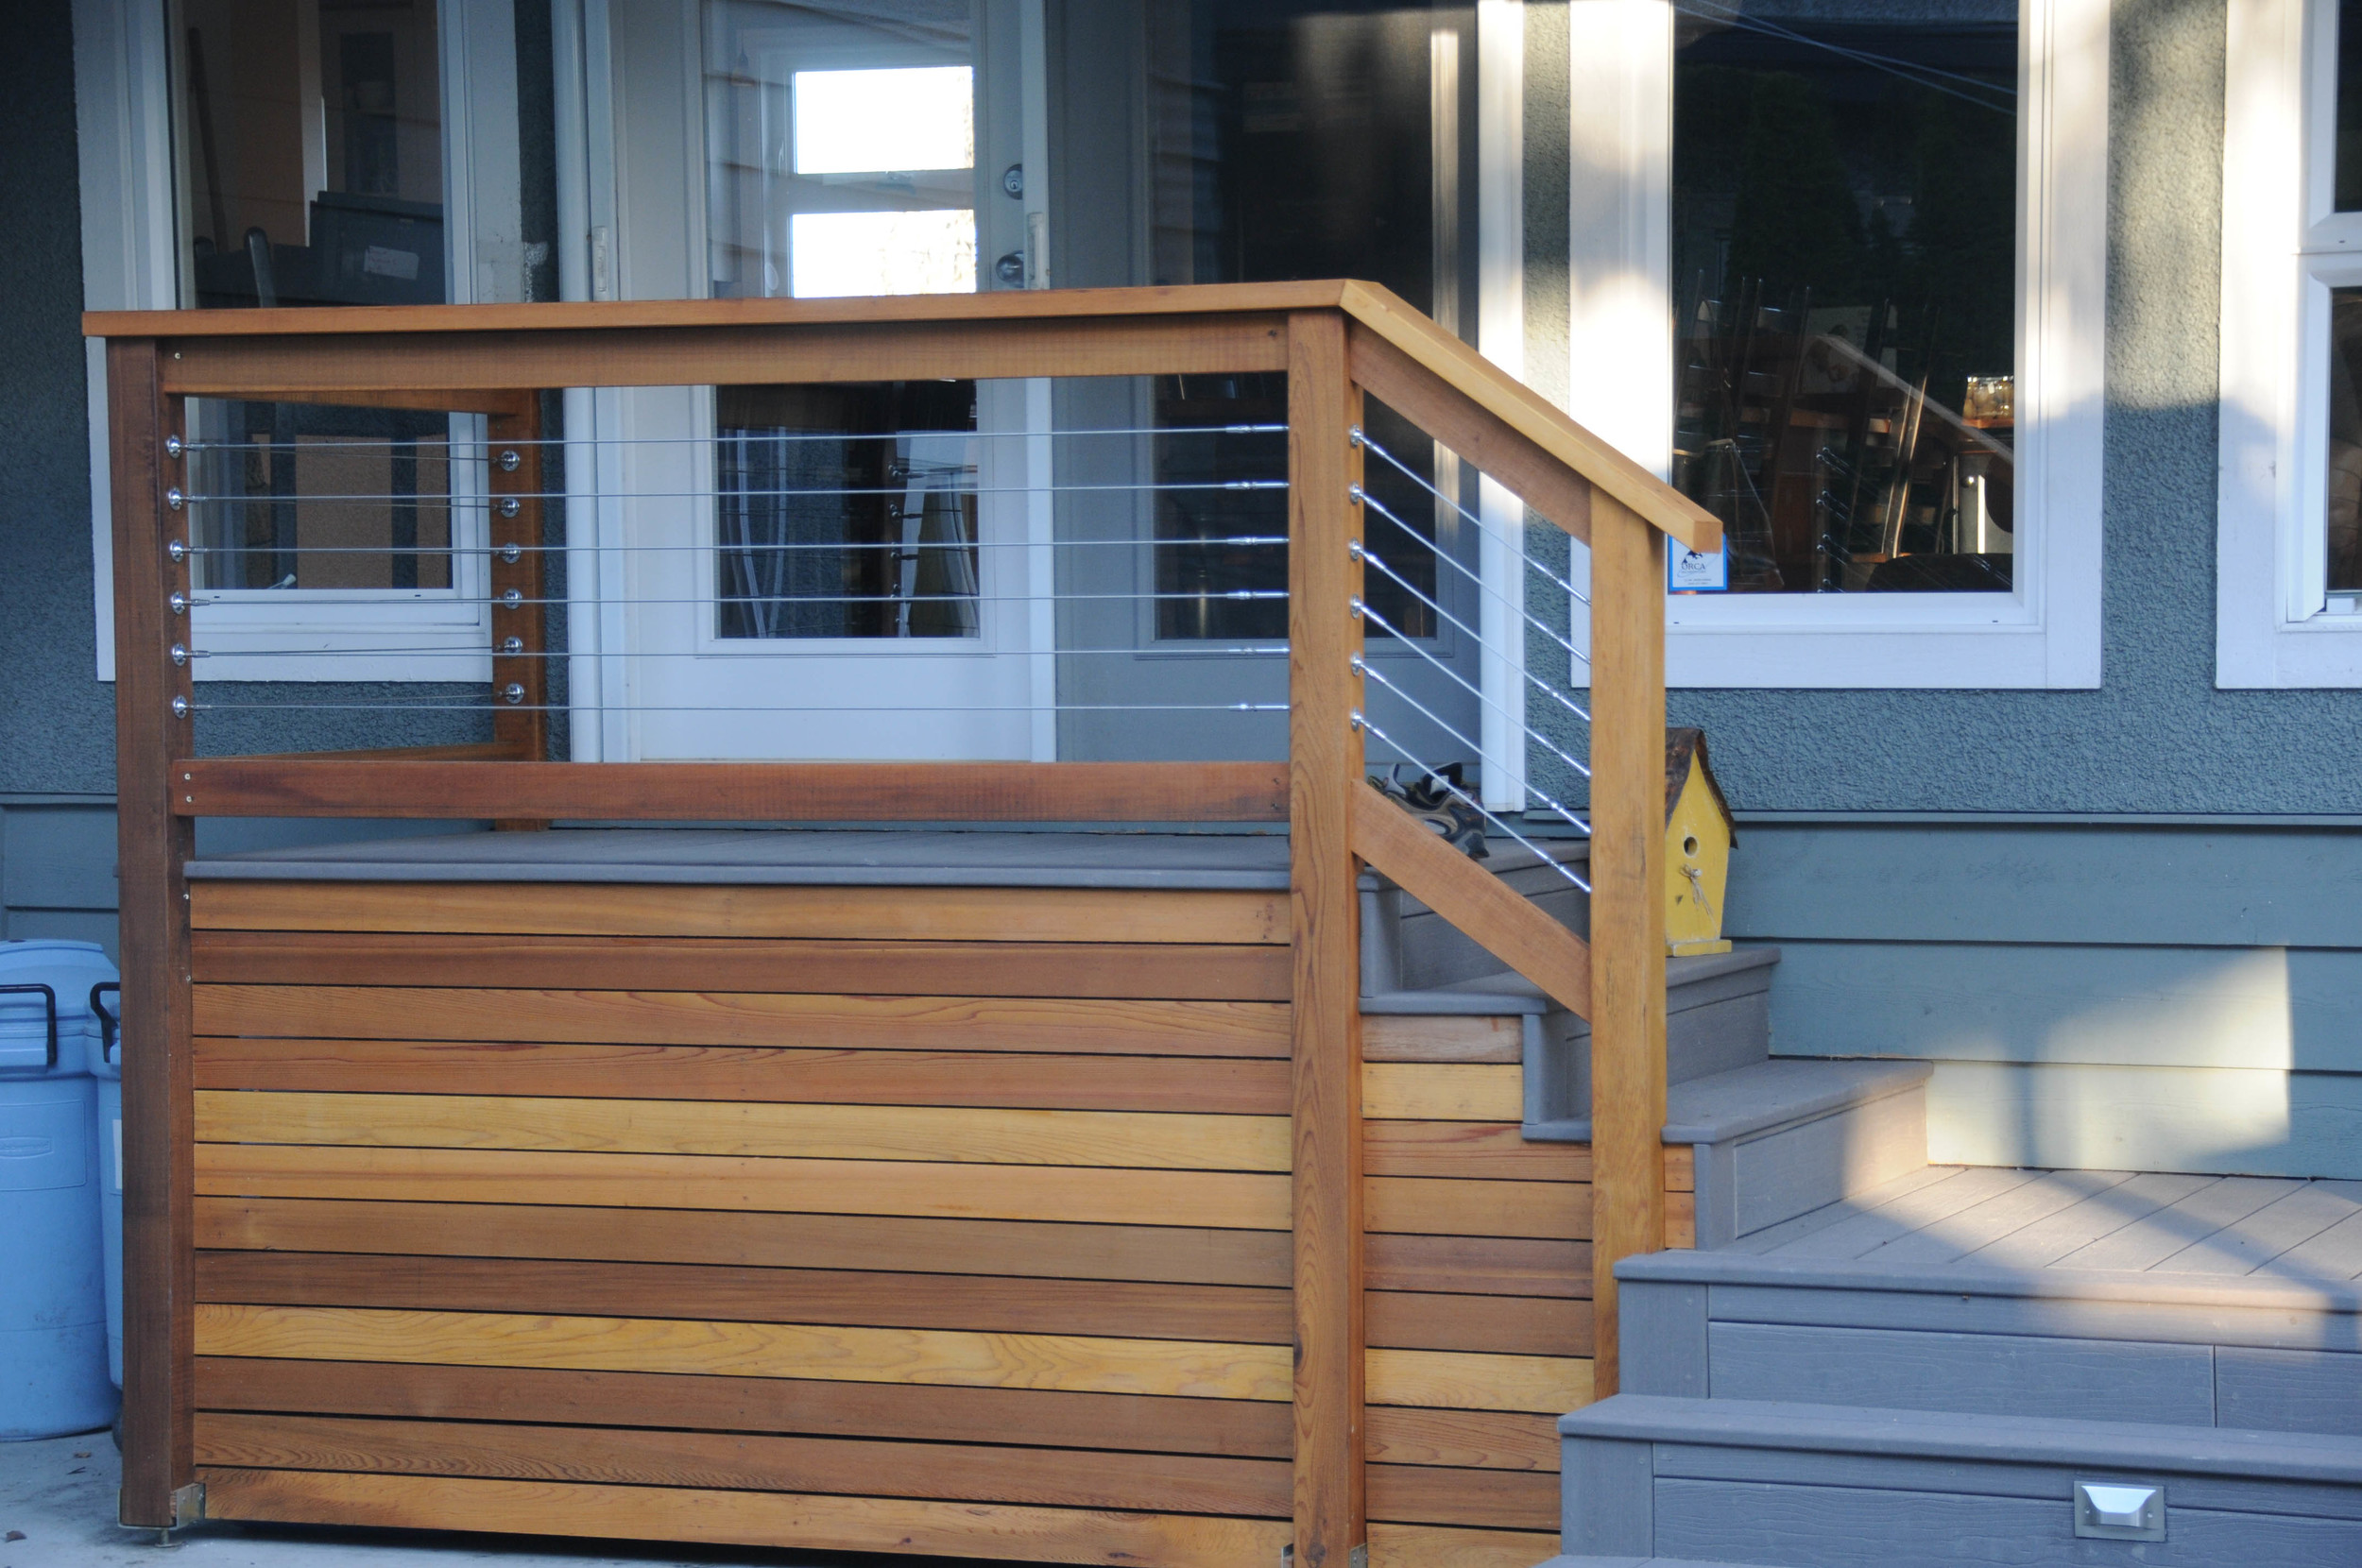 Red Cedar Fence & Stainless Steel Cable Railing